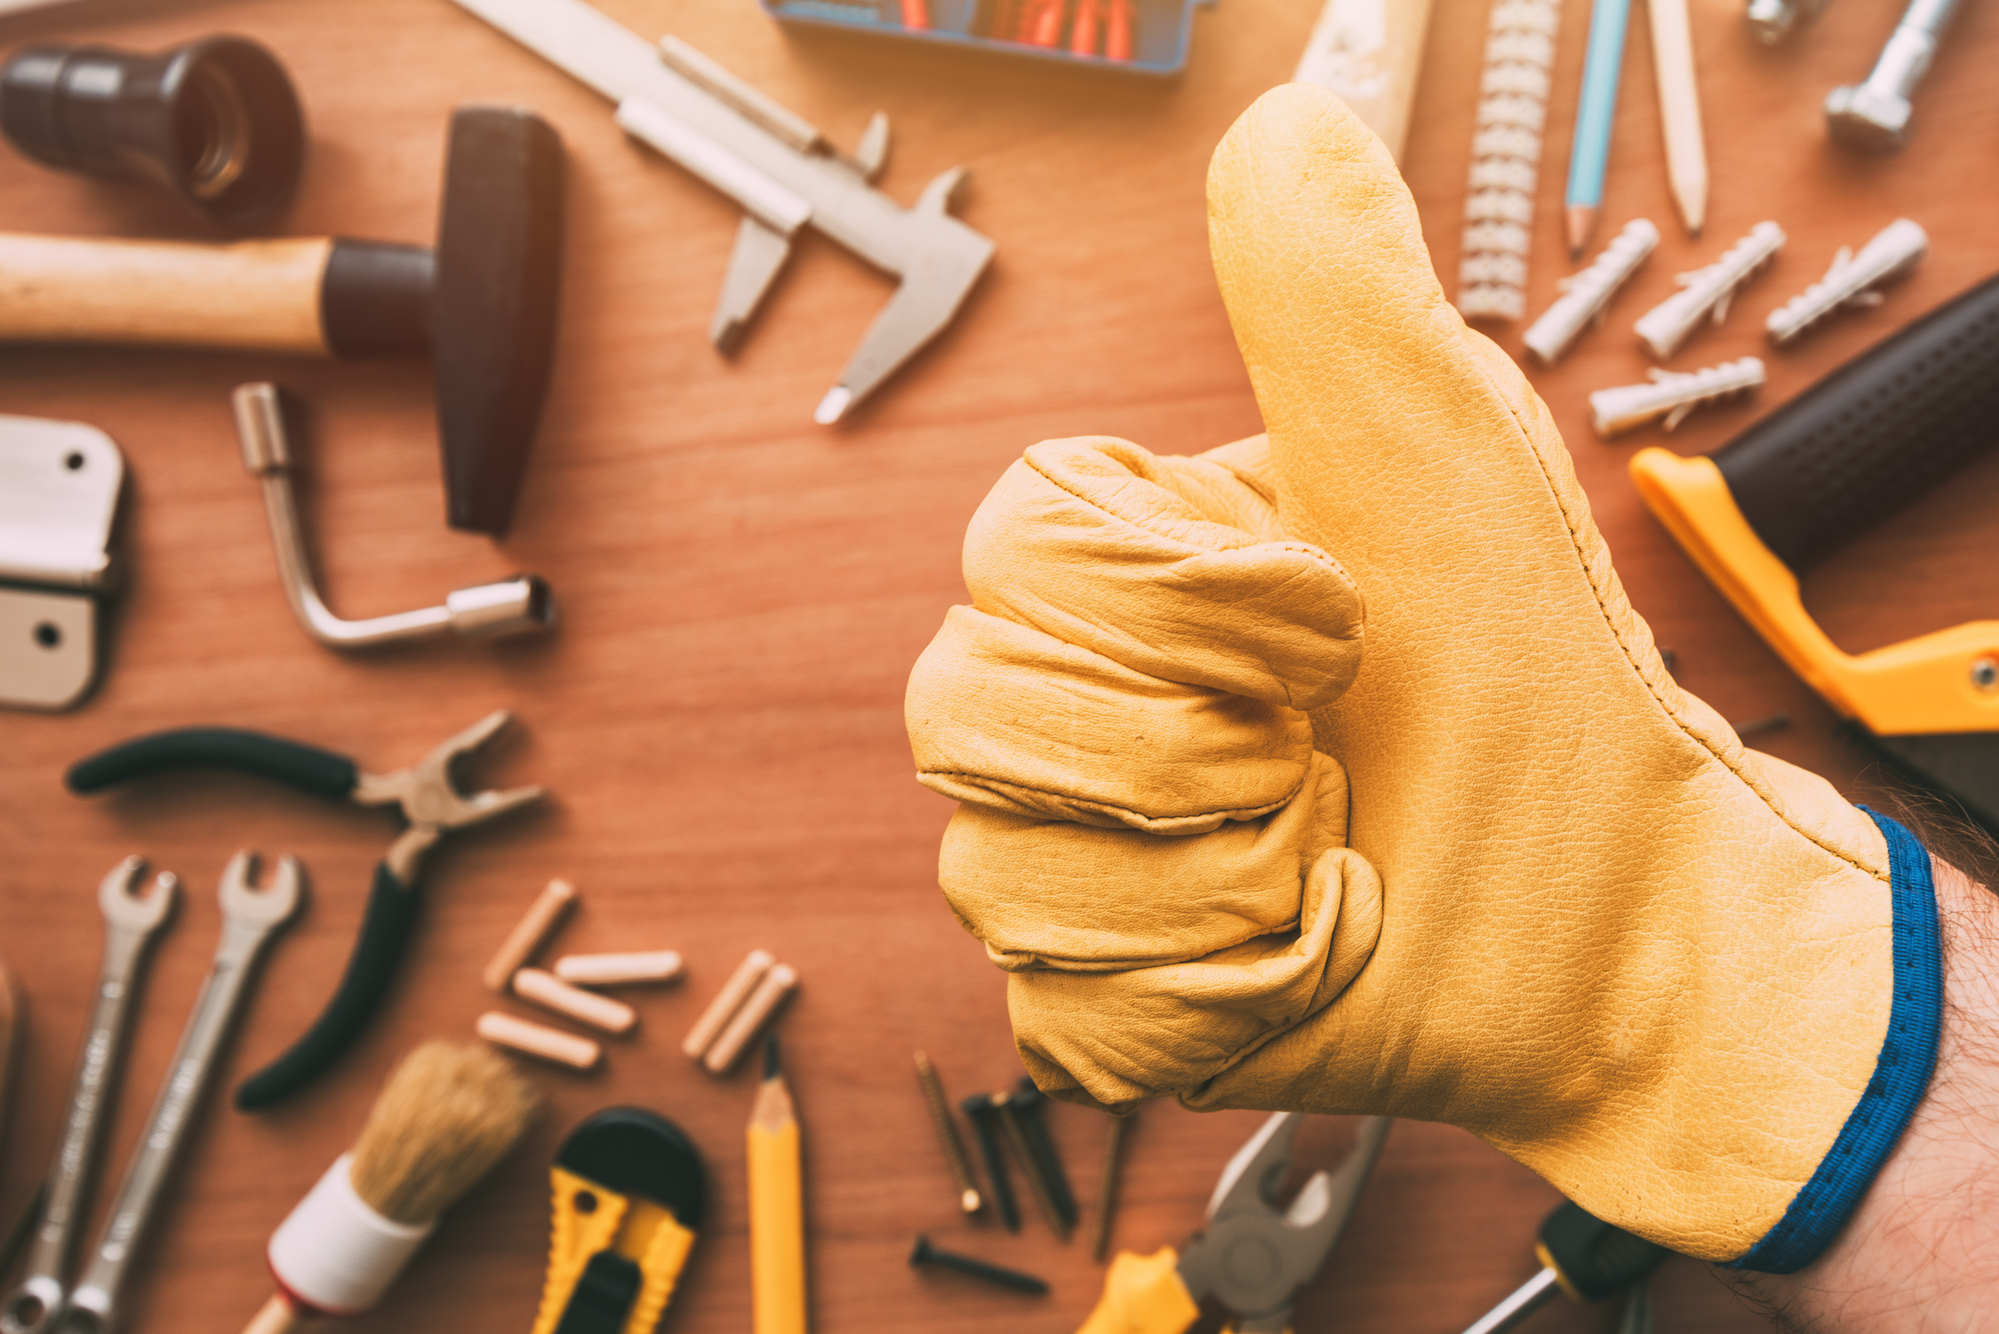 Maintenance handyman gesturing thumb up approval hand sign over the work desk with DIY tools, top view